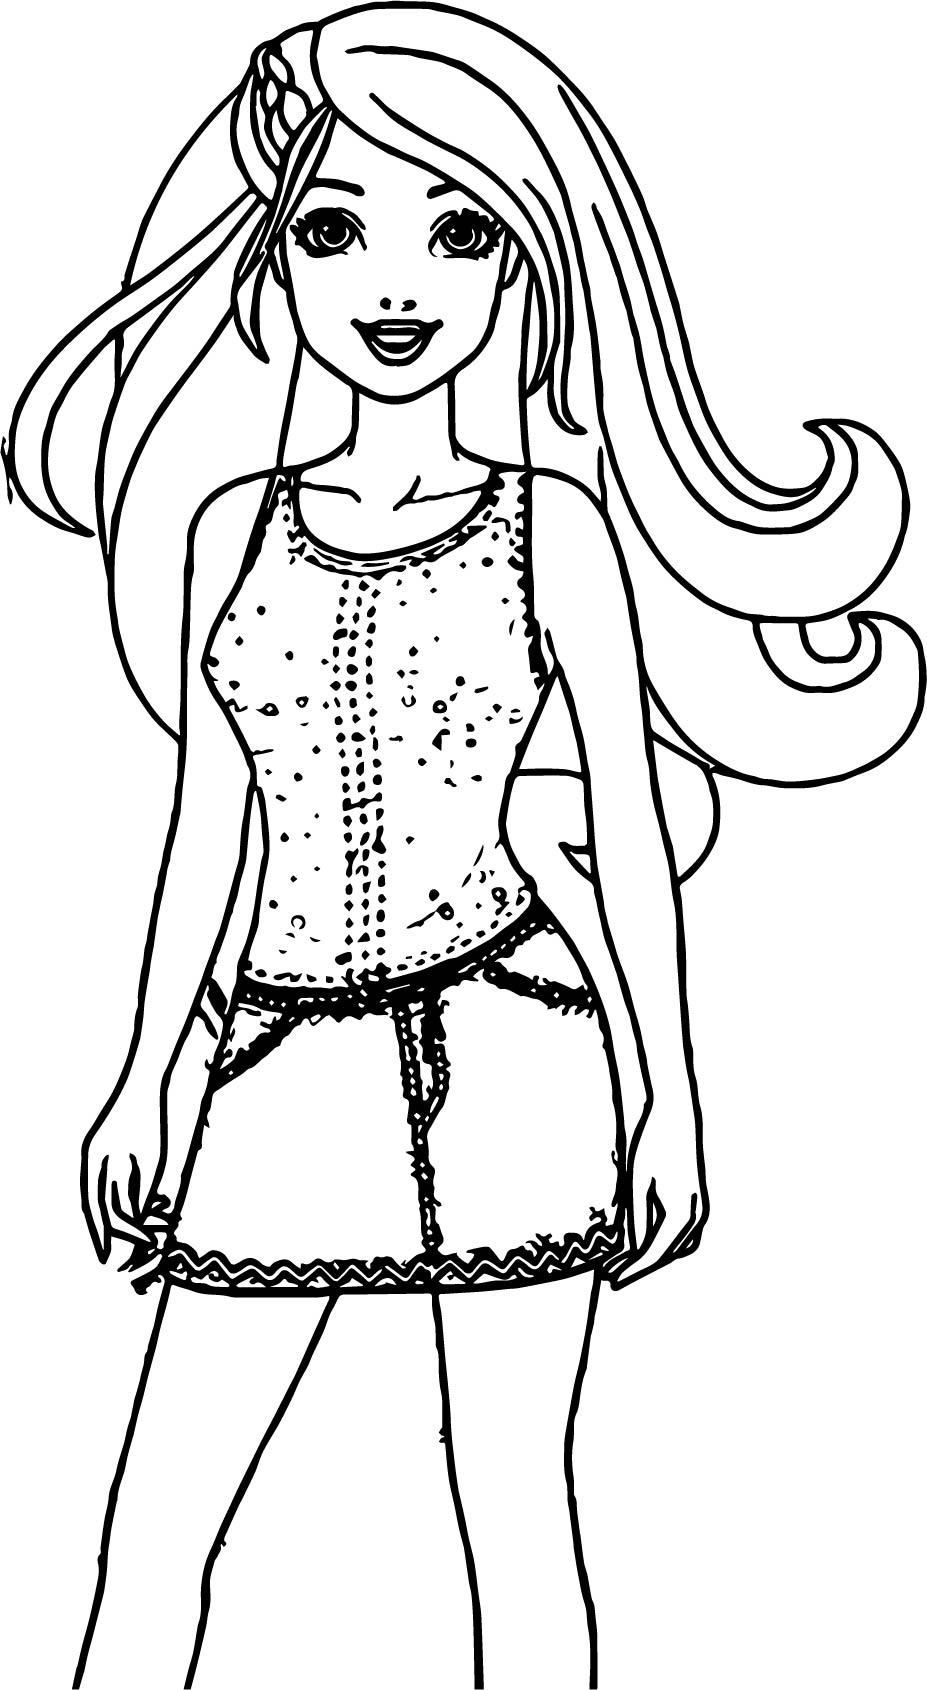 barbie dress coloring page wecoloringpage